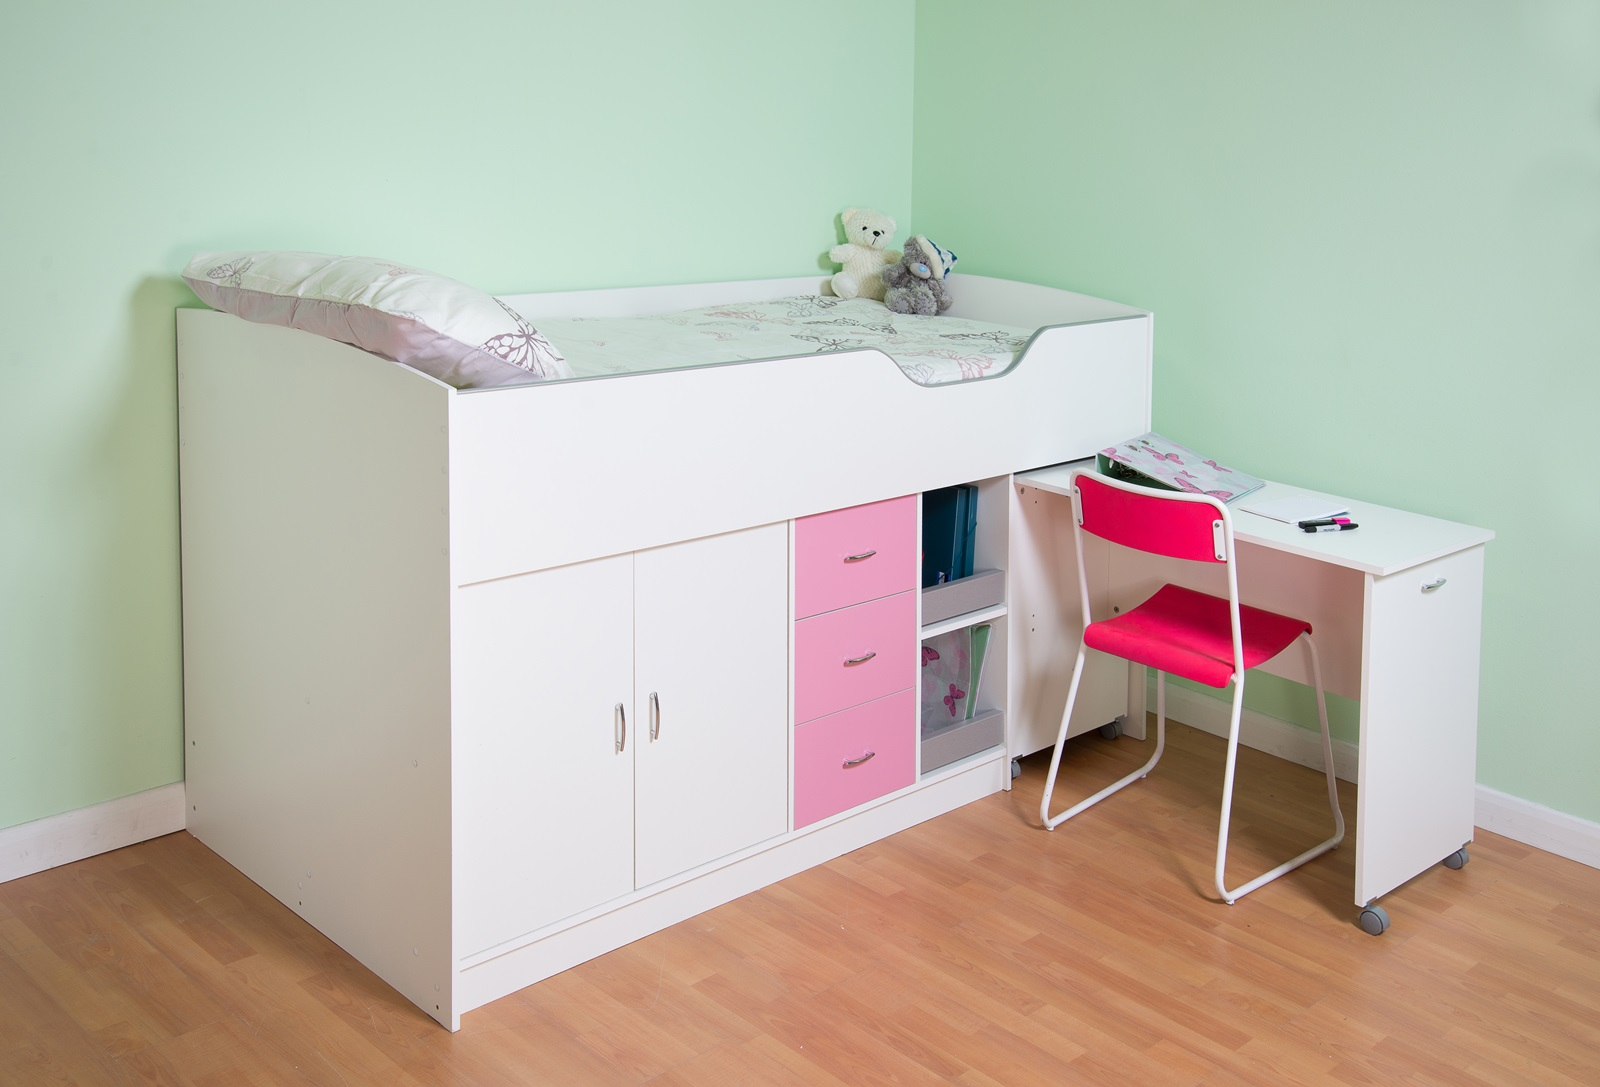 Are Cabin Beds The Solution For Small Bedrooms: Cabin Beds